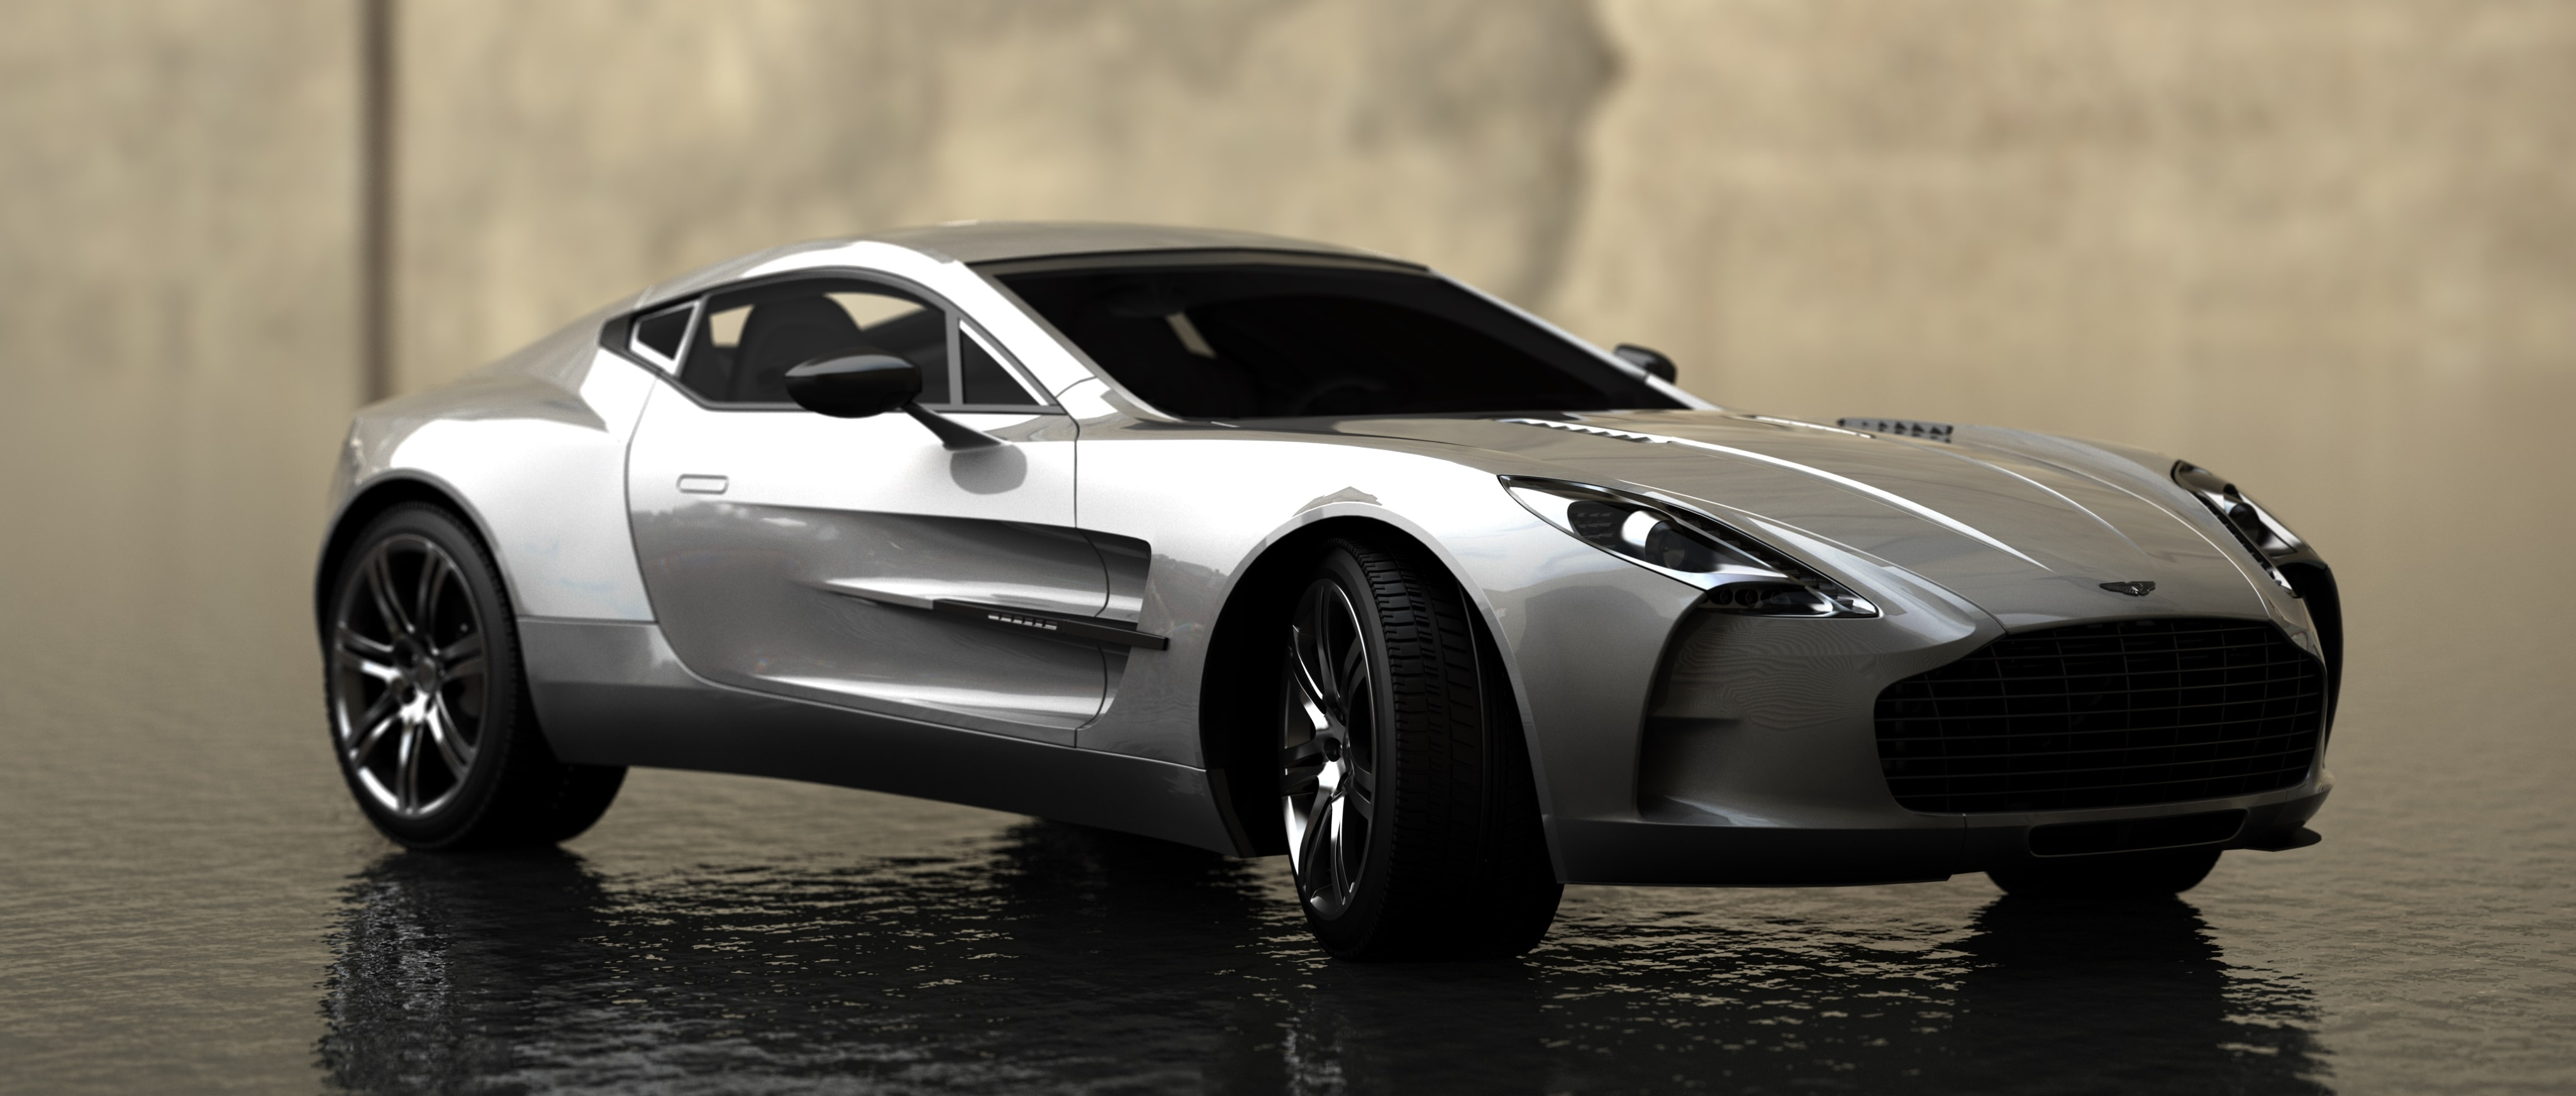 Aston Martin One 77 Hd Wallpapers 7wallpapers Net